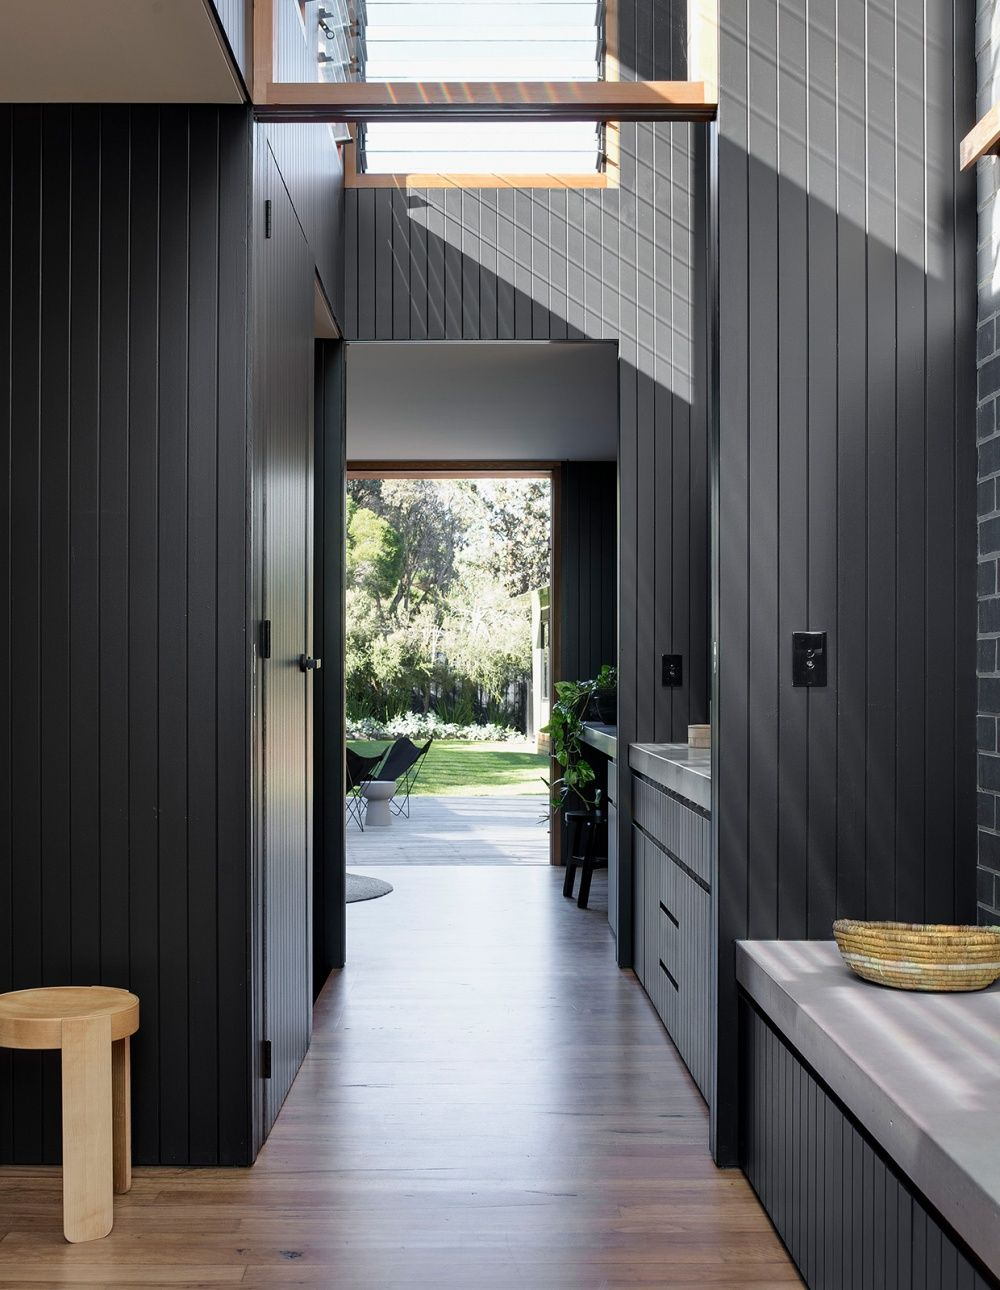 A series of full height concealed sliding doors act as walls that can section off the bedroom from the hallway and living space as required. & Point Lonsdale Studio | Living spaces Doors and Bedrooms